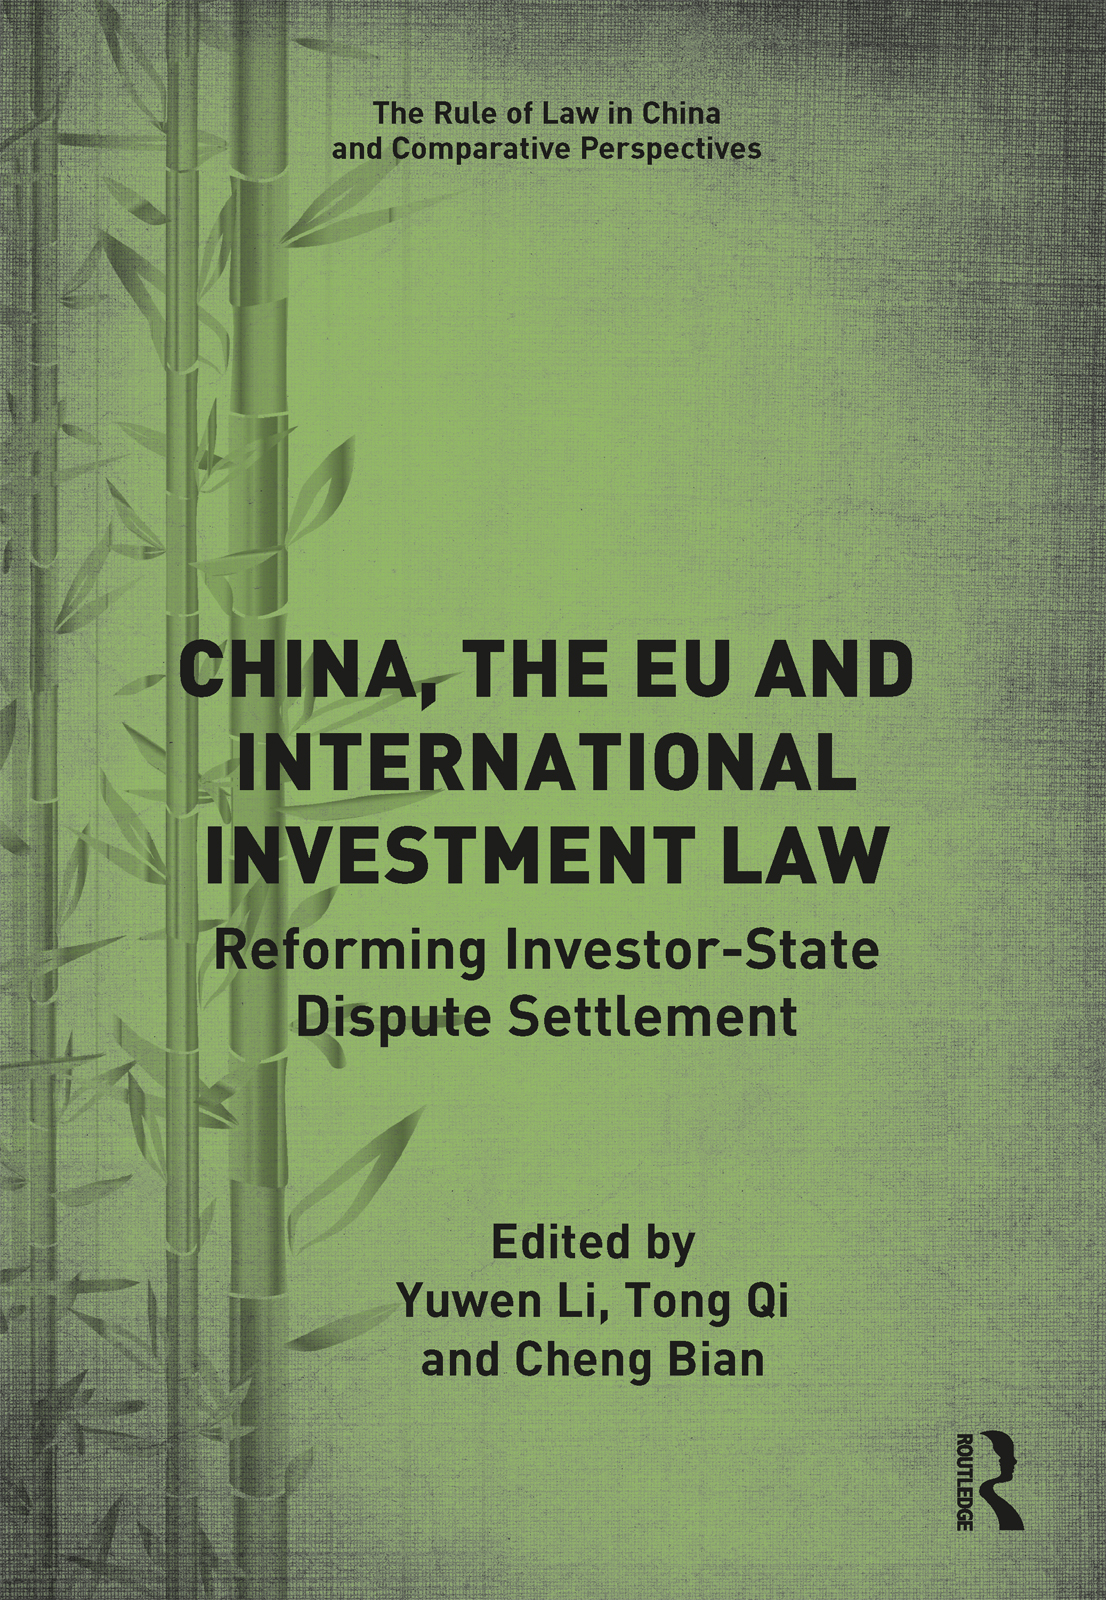 China, the EU and International Investment Law: Reforming Investor-State Dispute Settlement book cover